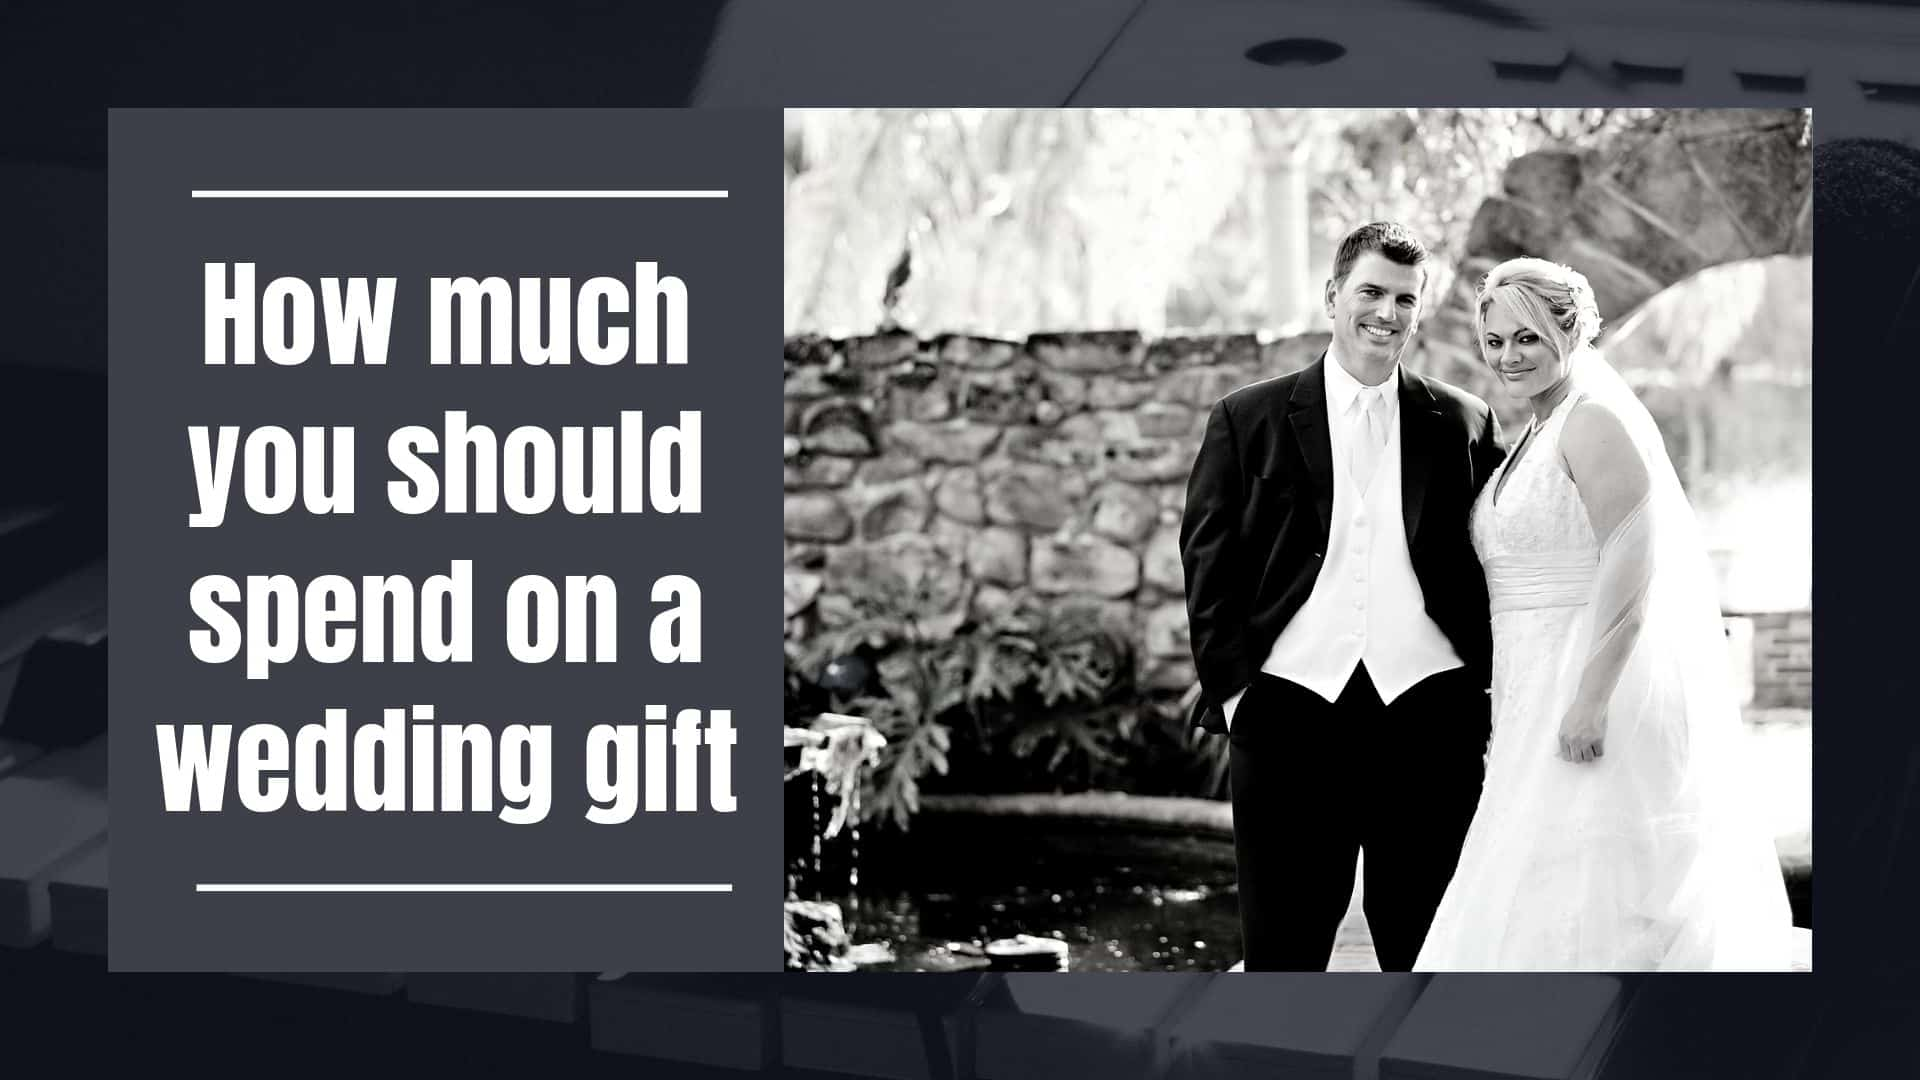 How Much Do You Spend On Wedding Gift: How Much You Should Spend On A Wedding Gift